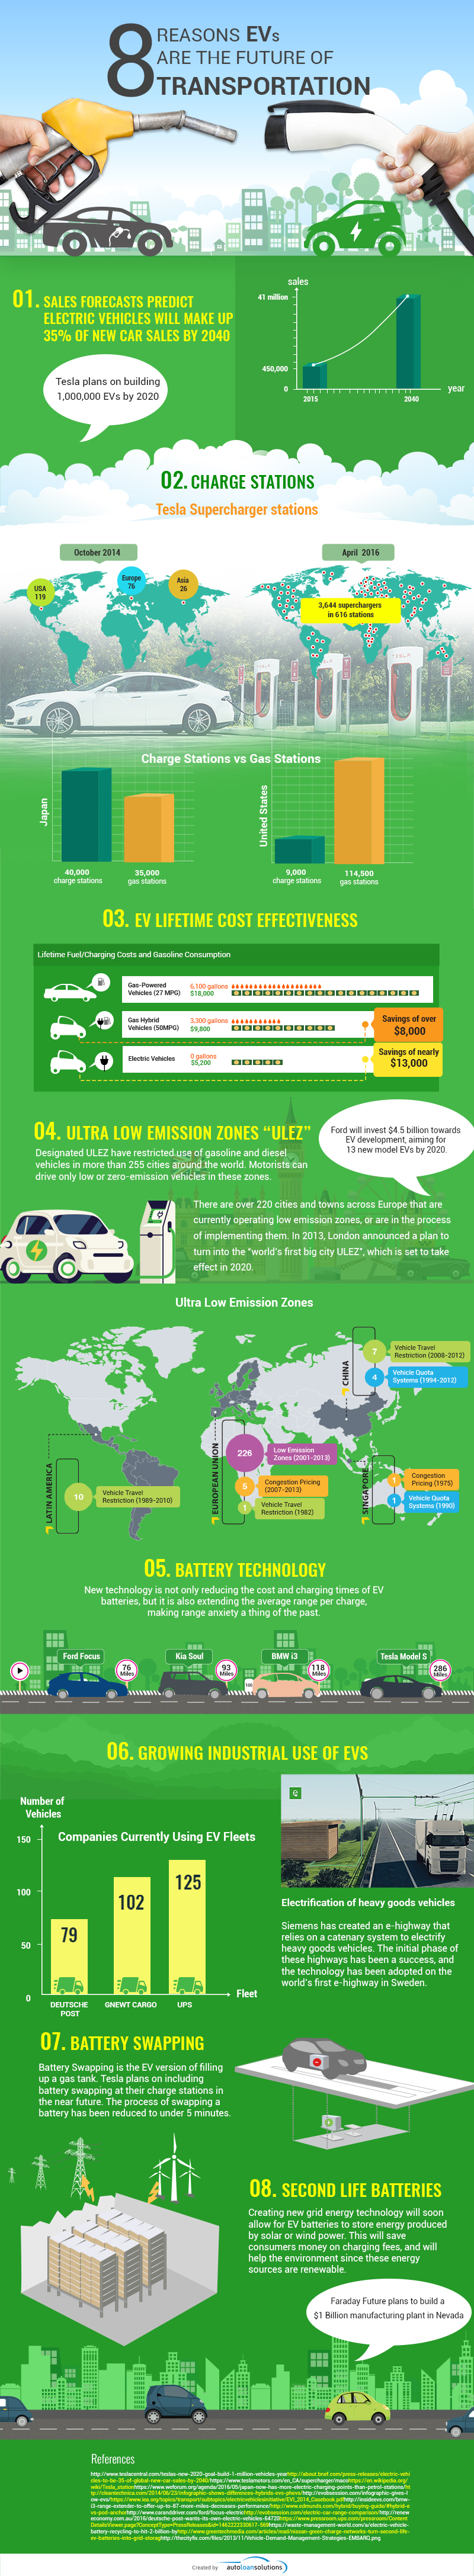 electric-vehicles-are-the-future